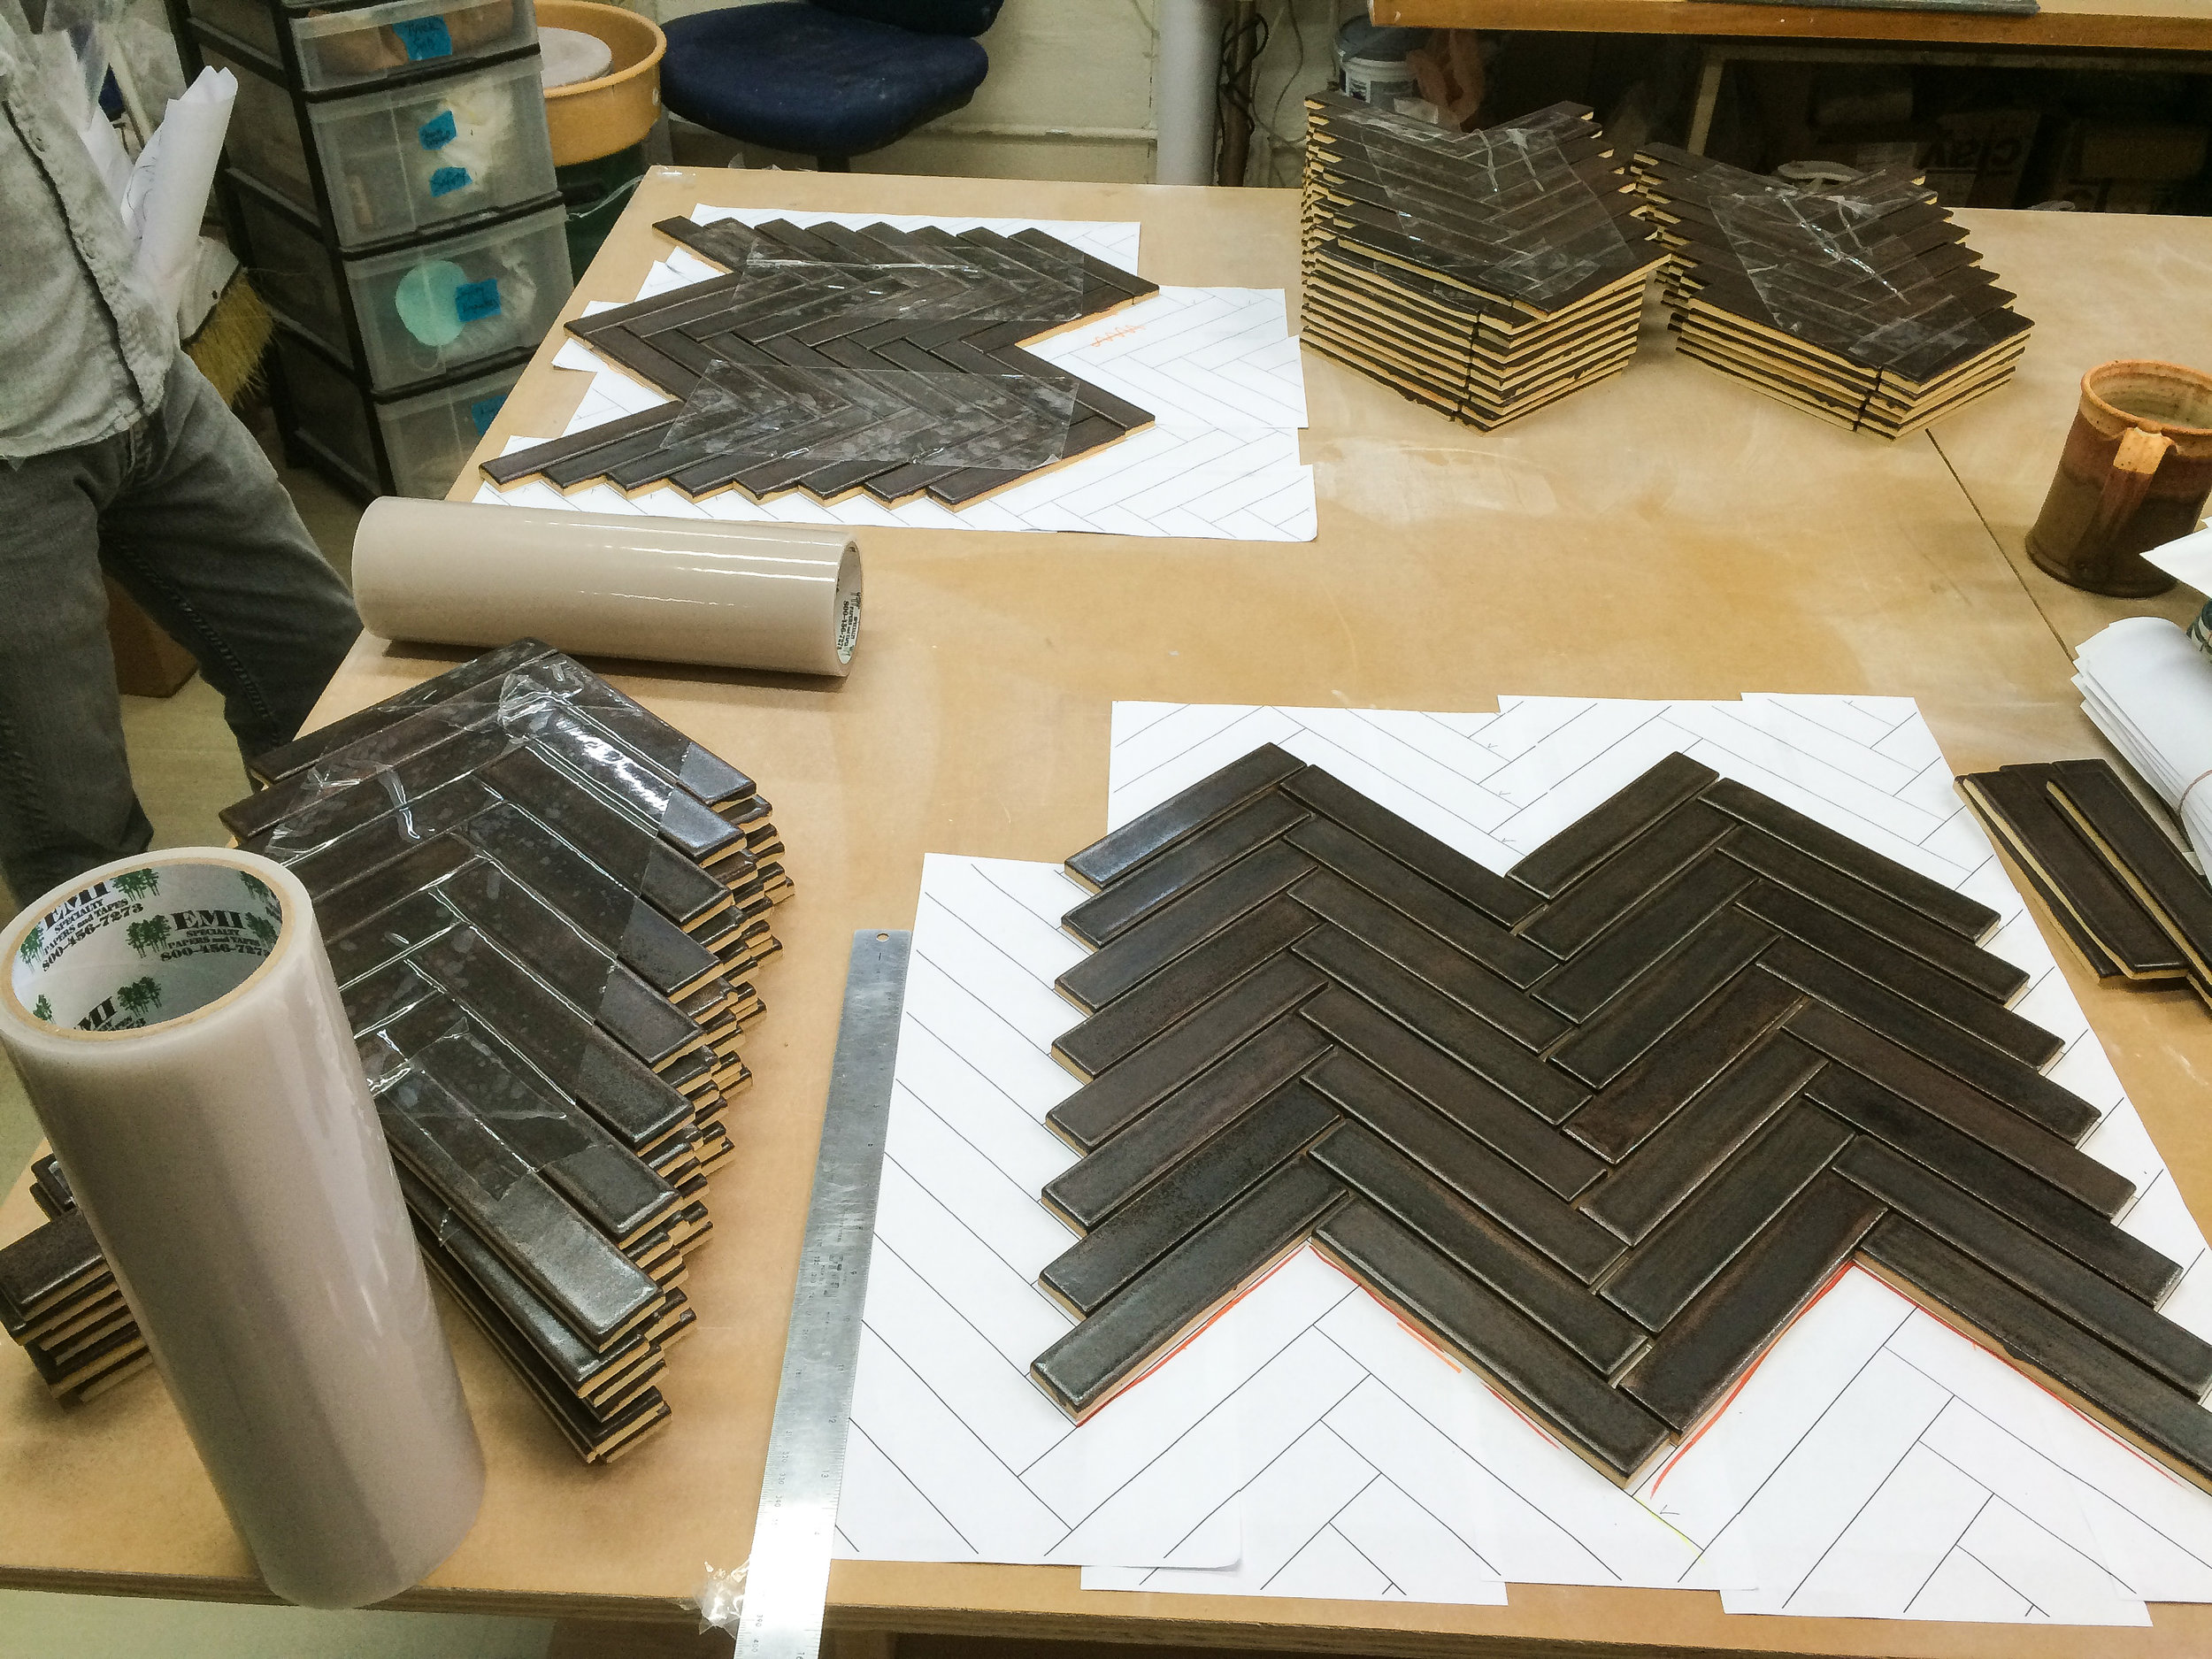 Firebox Tile packaged for shipment. Clear-face adhesive tape holds individual tiles together.